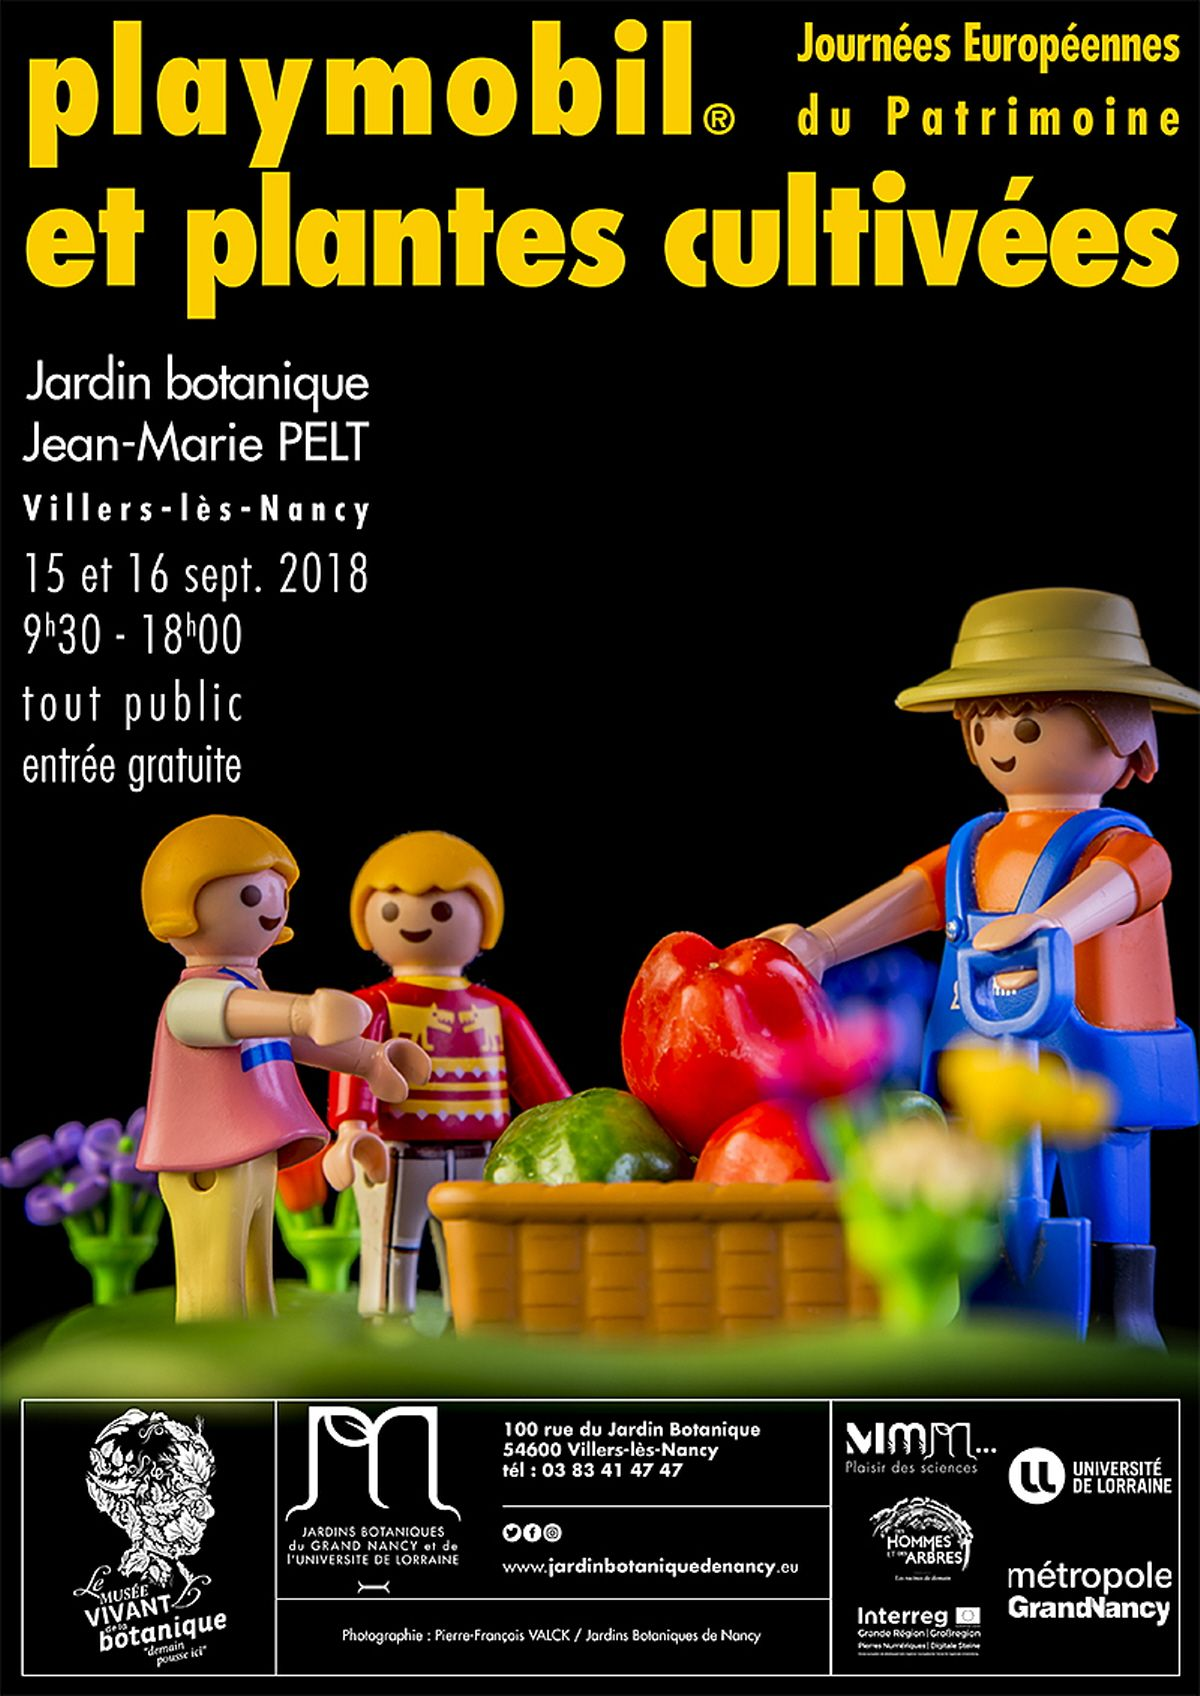 Pin by JL Matterer on Expositions Playmobil | Pinterest | Playmobil